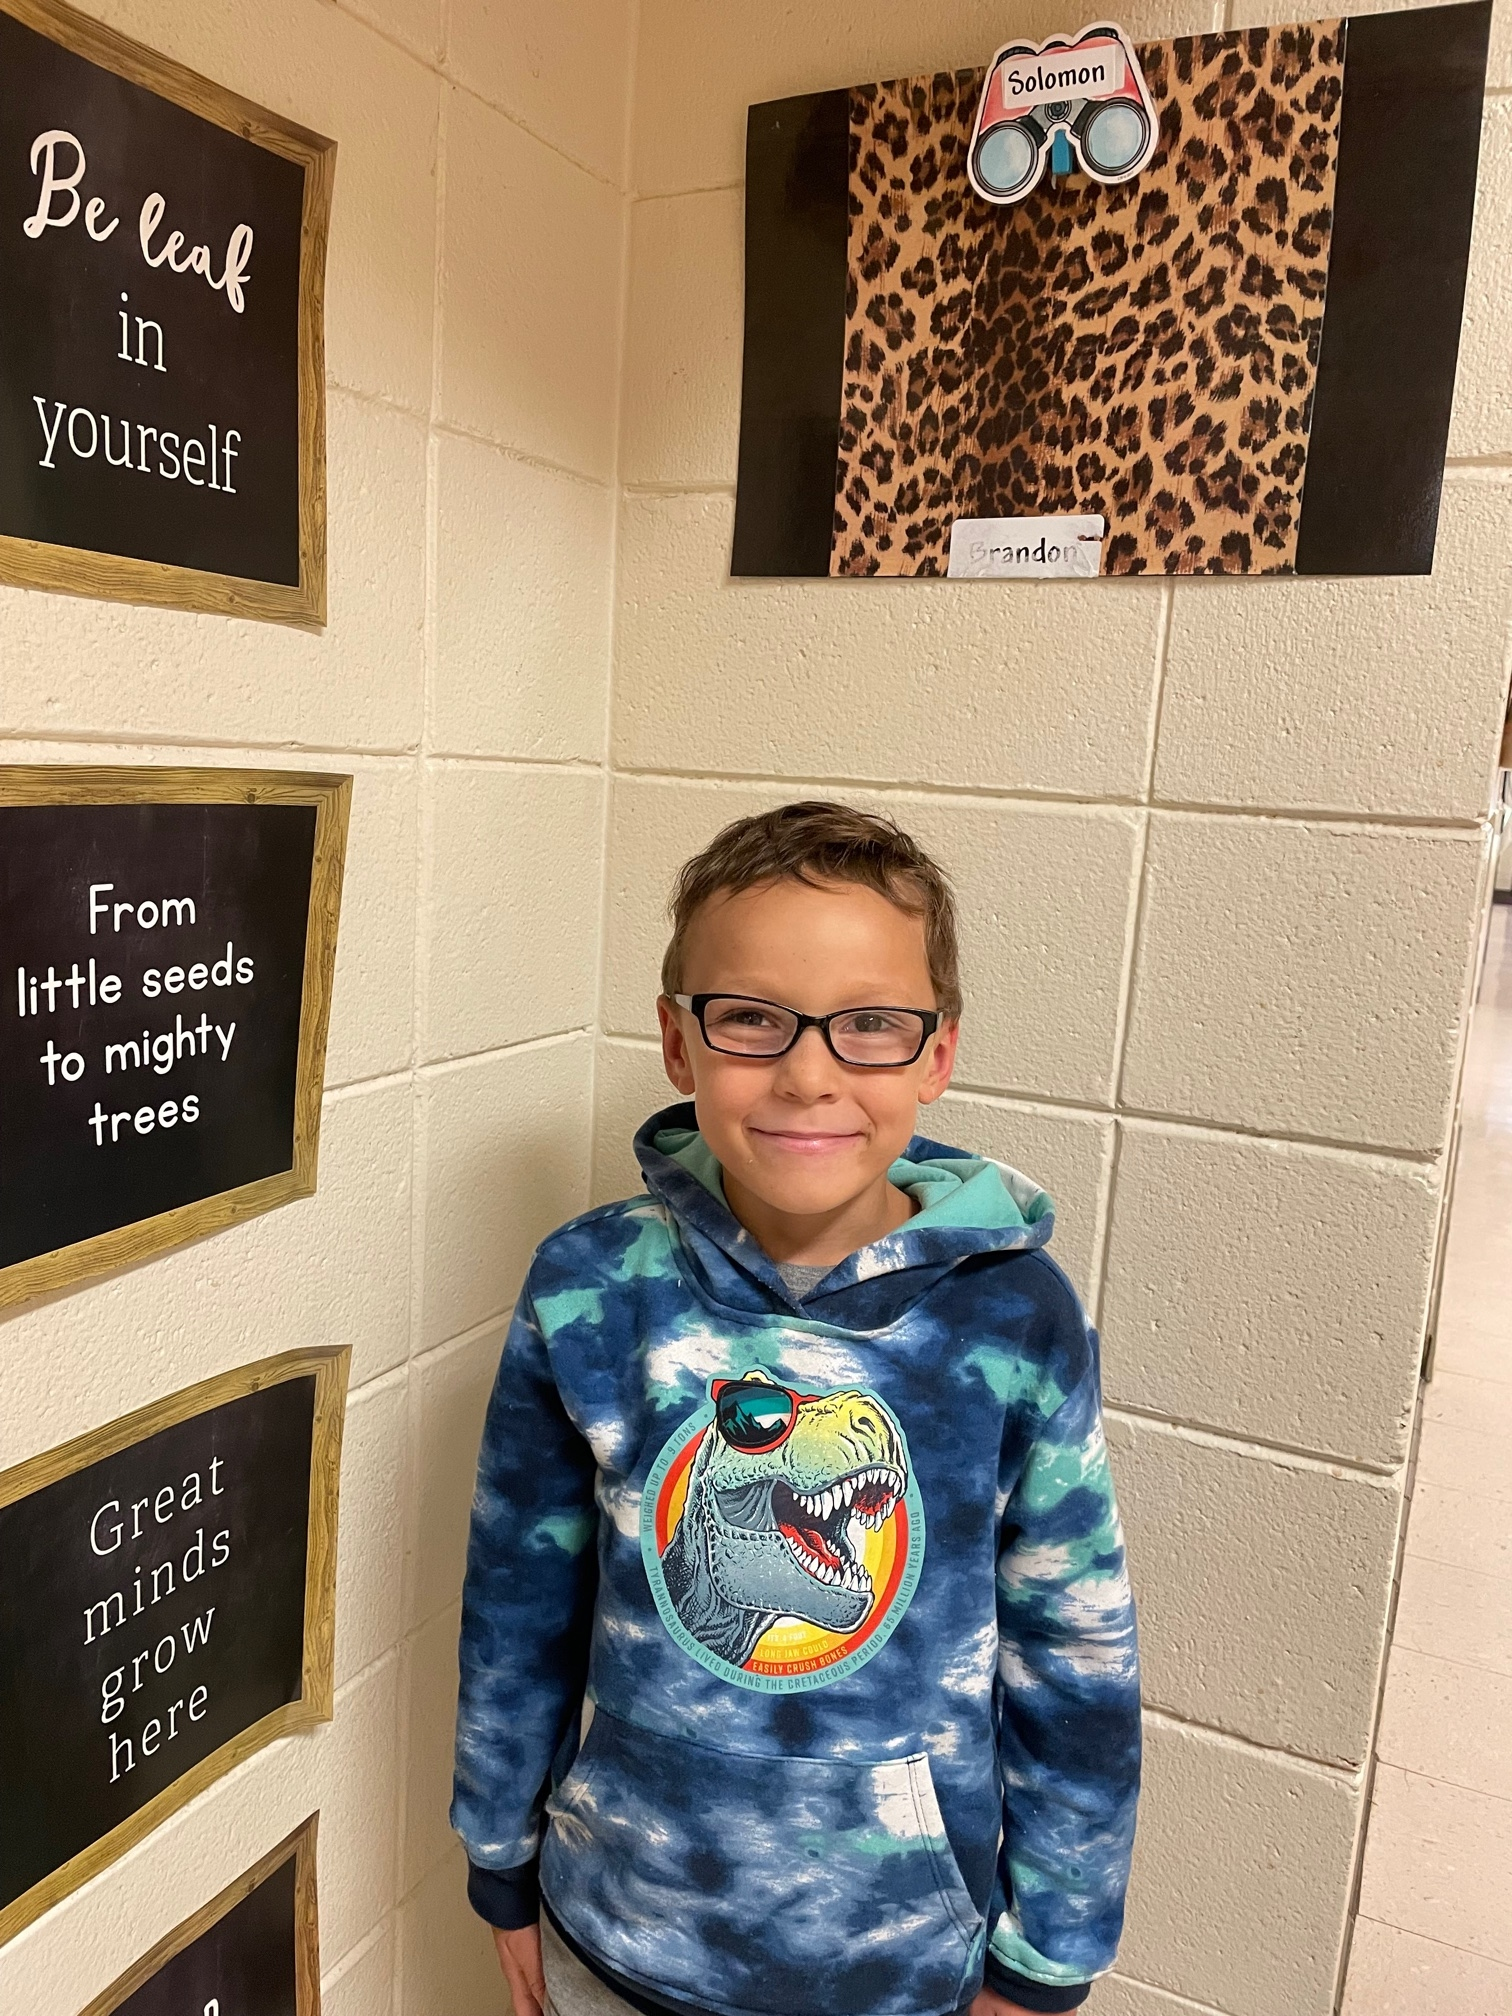 Solomon Ray Student of the Week